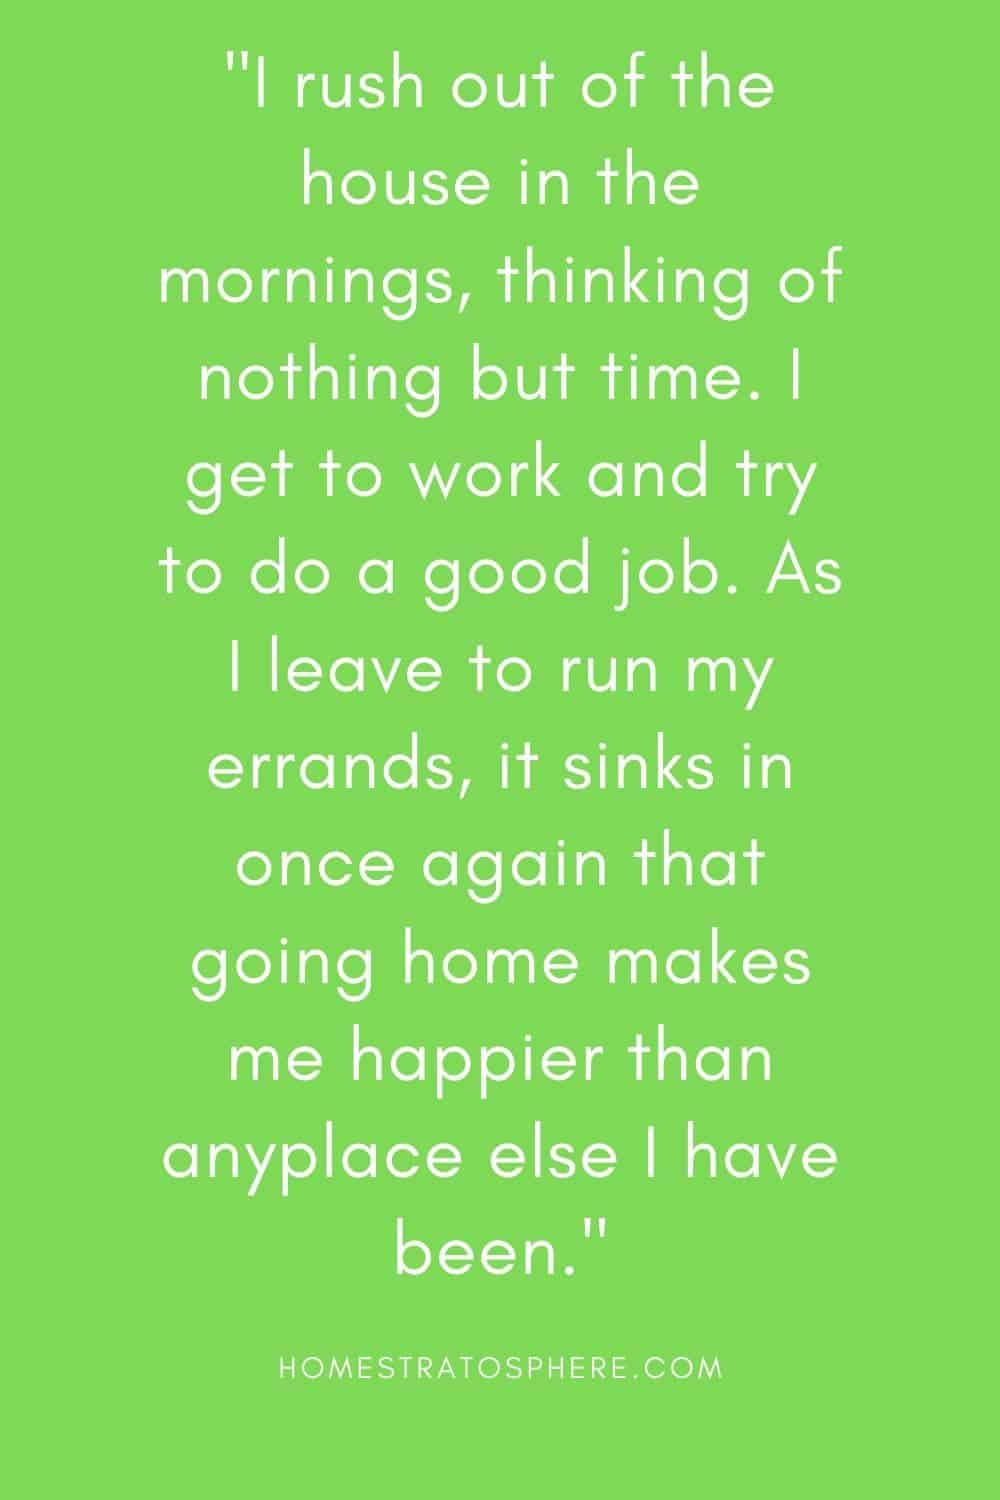 """""""I rush out of the house in the mornings, thinking of nothing but time. I get to work and try to do a good job. As I leave to run my errands, it sinks in once again that going home makes me happier than anyplace else I have been."""""""